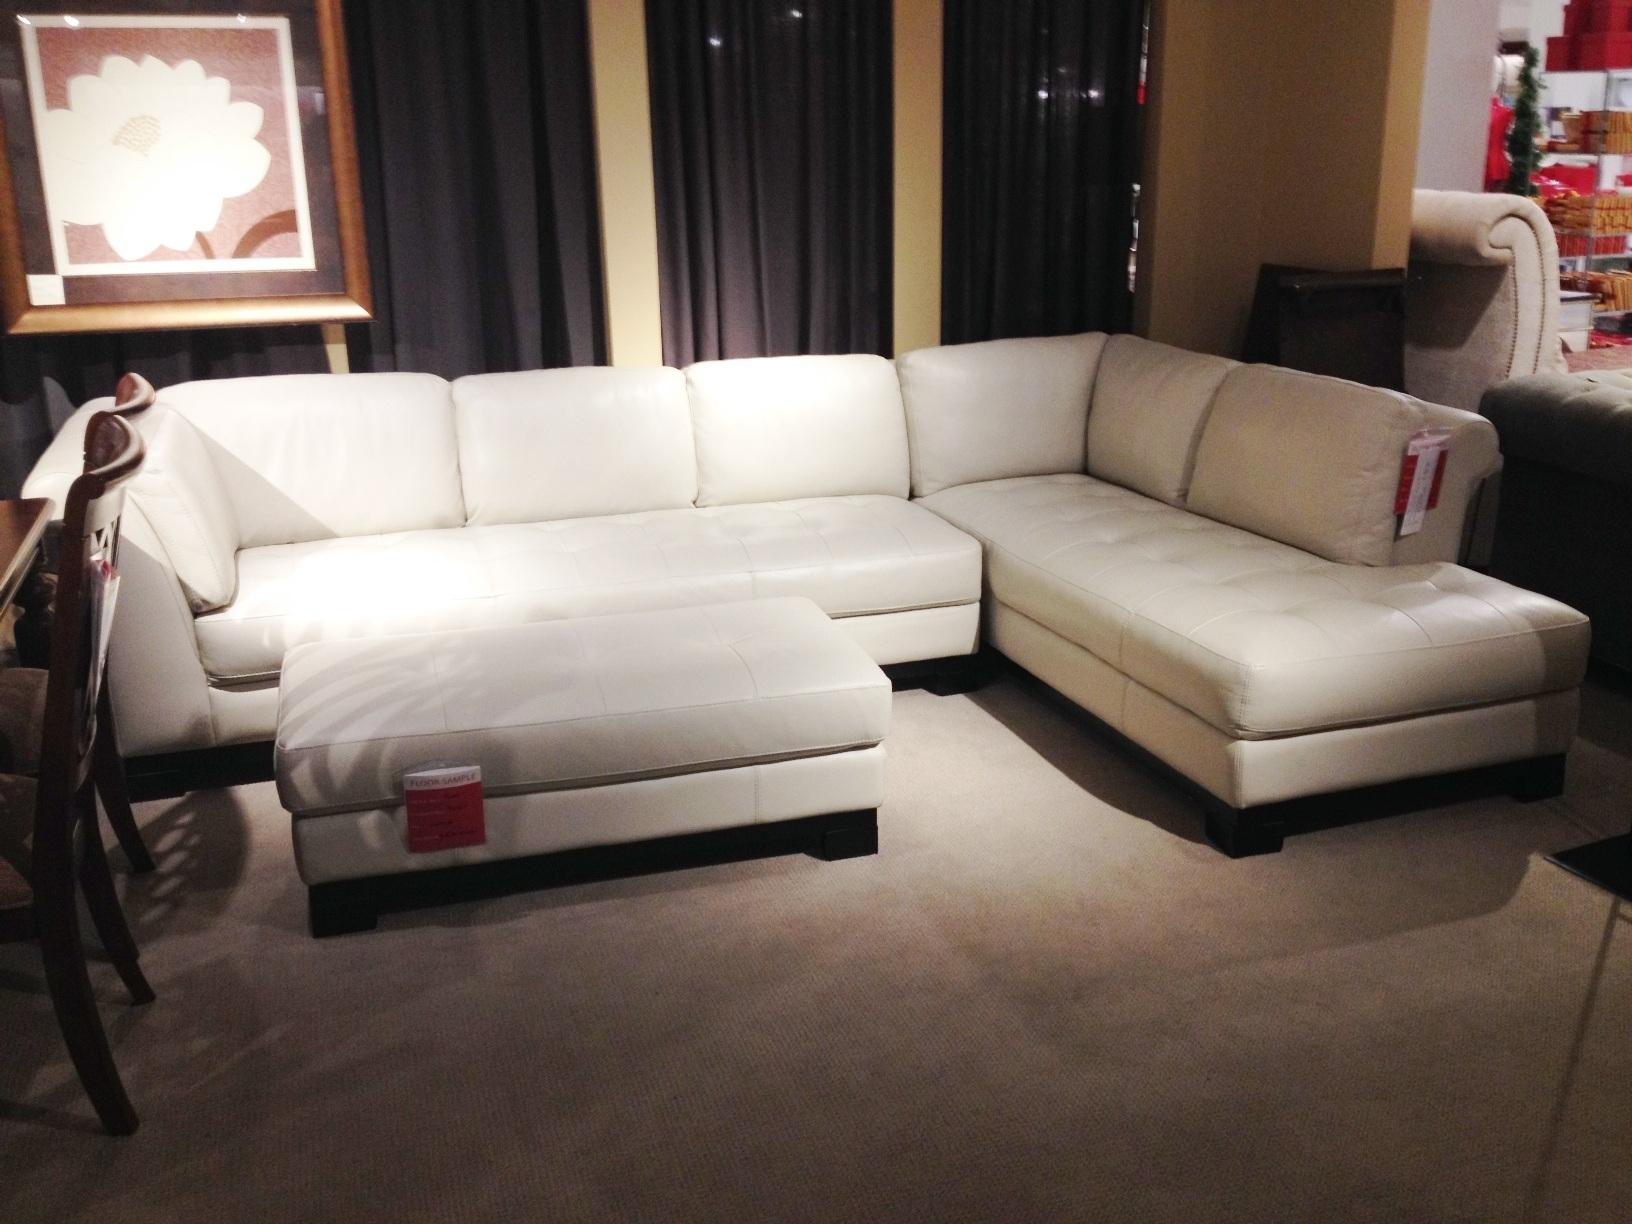 White Leather Sectional Sofa Macy's • Leather Sofa for Macys Sectional Sofas (Image 9 of 10)